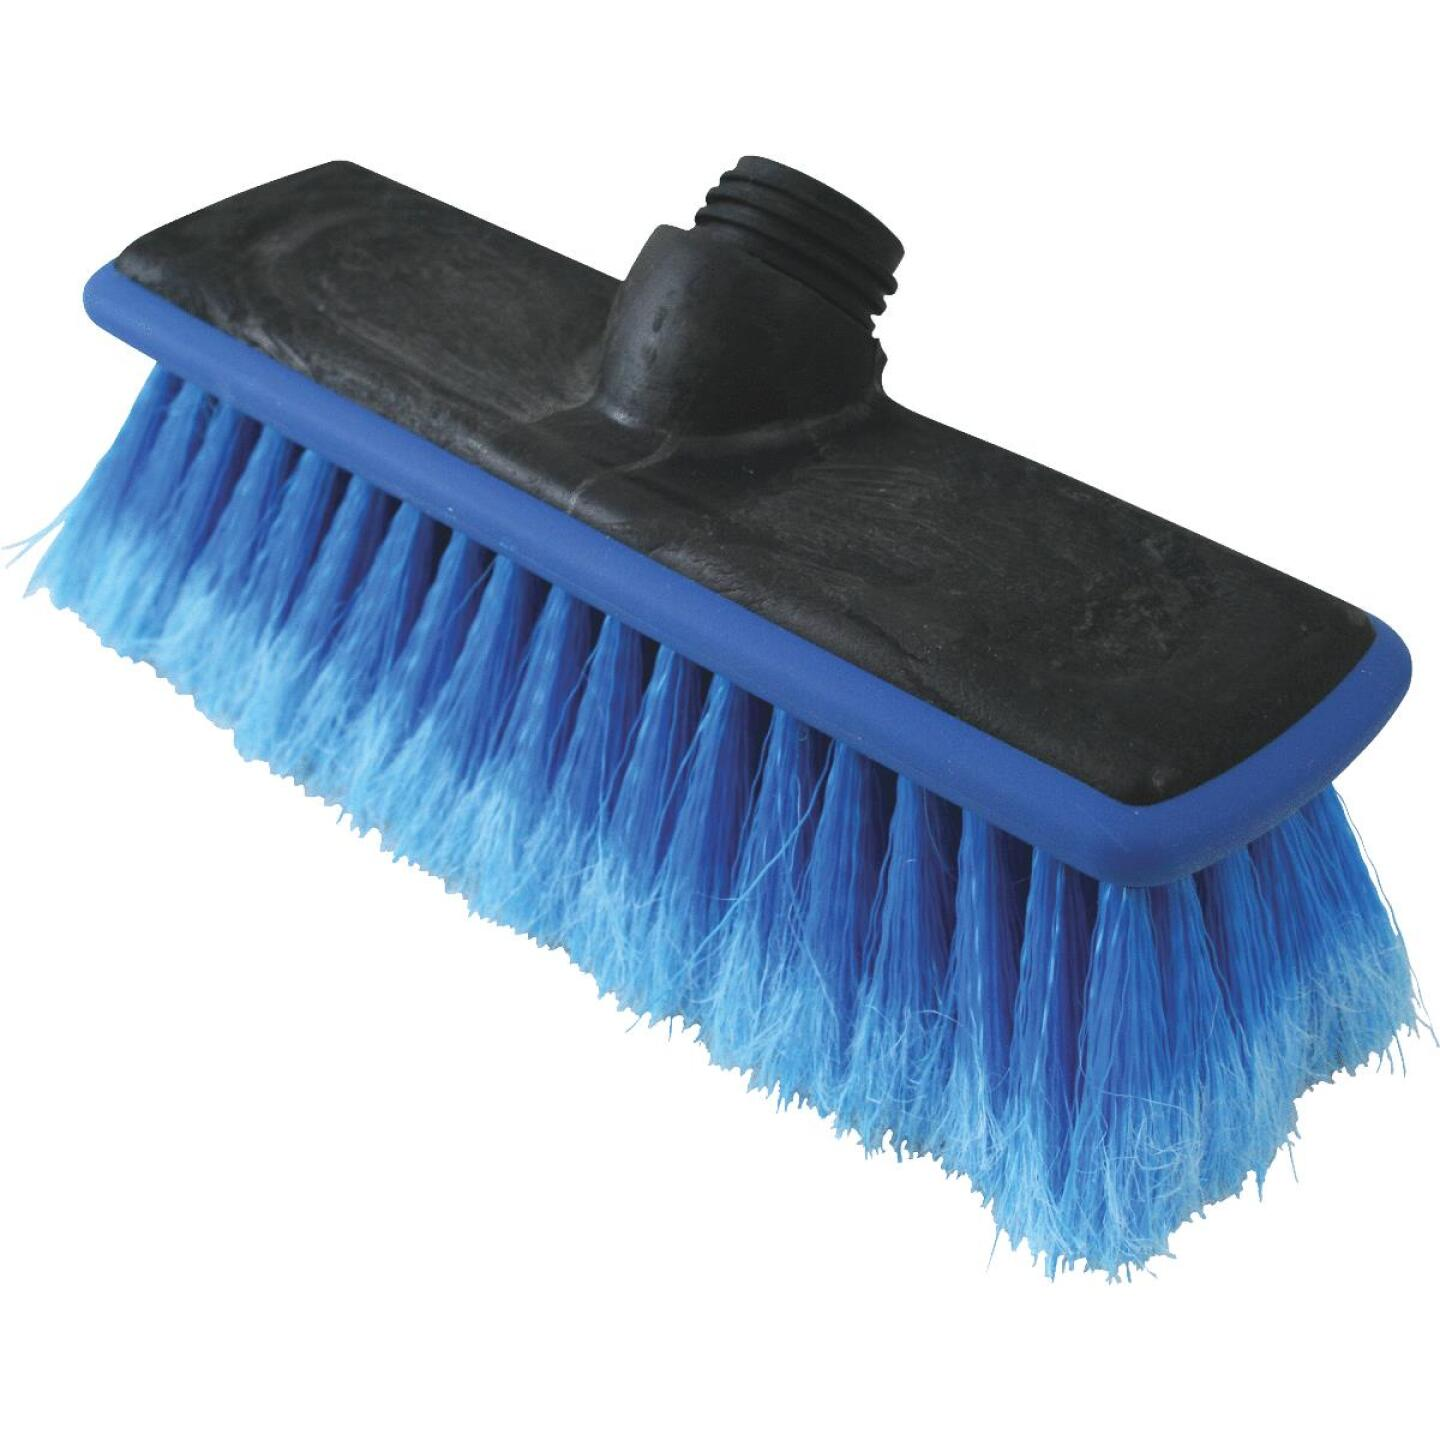 Carrand Synthetic 10 In. Blue Wash Brush Image 1